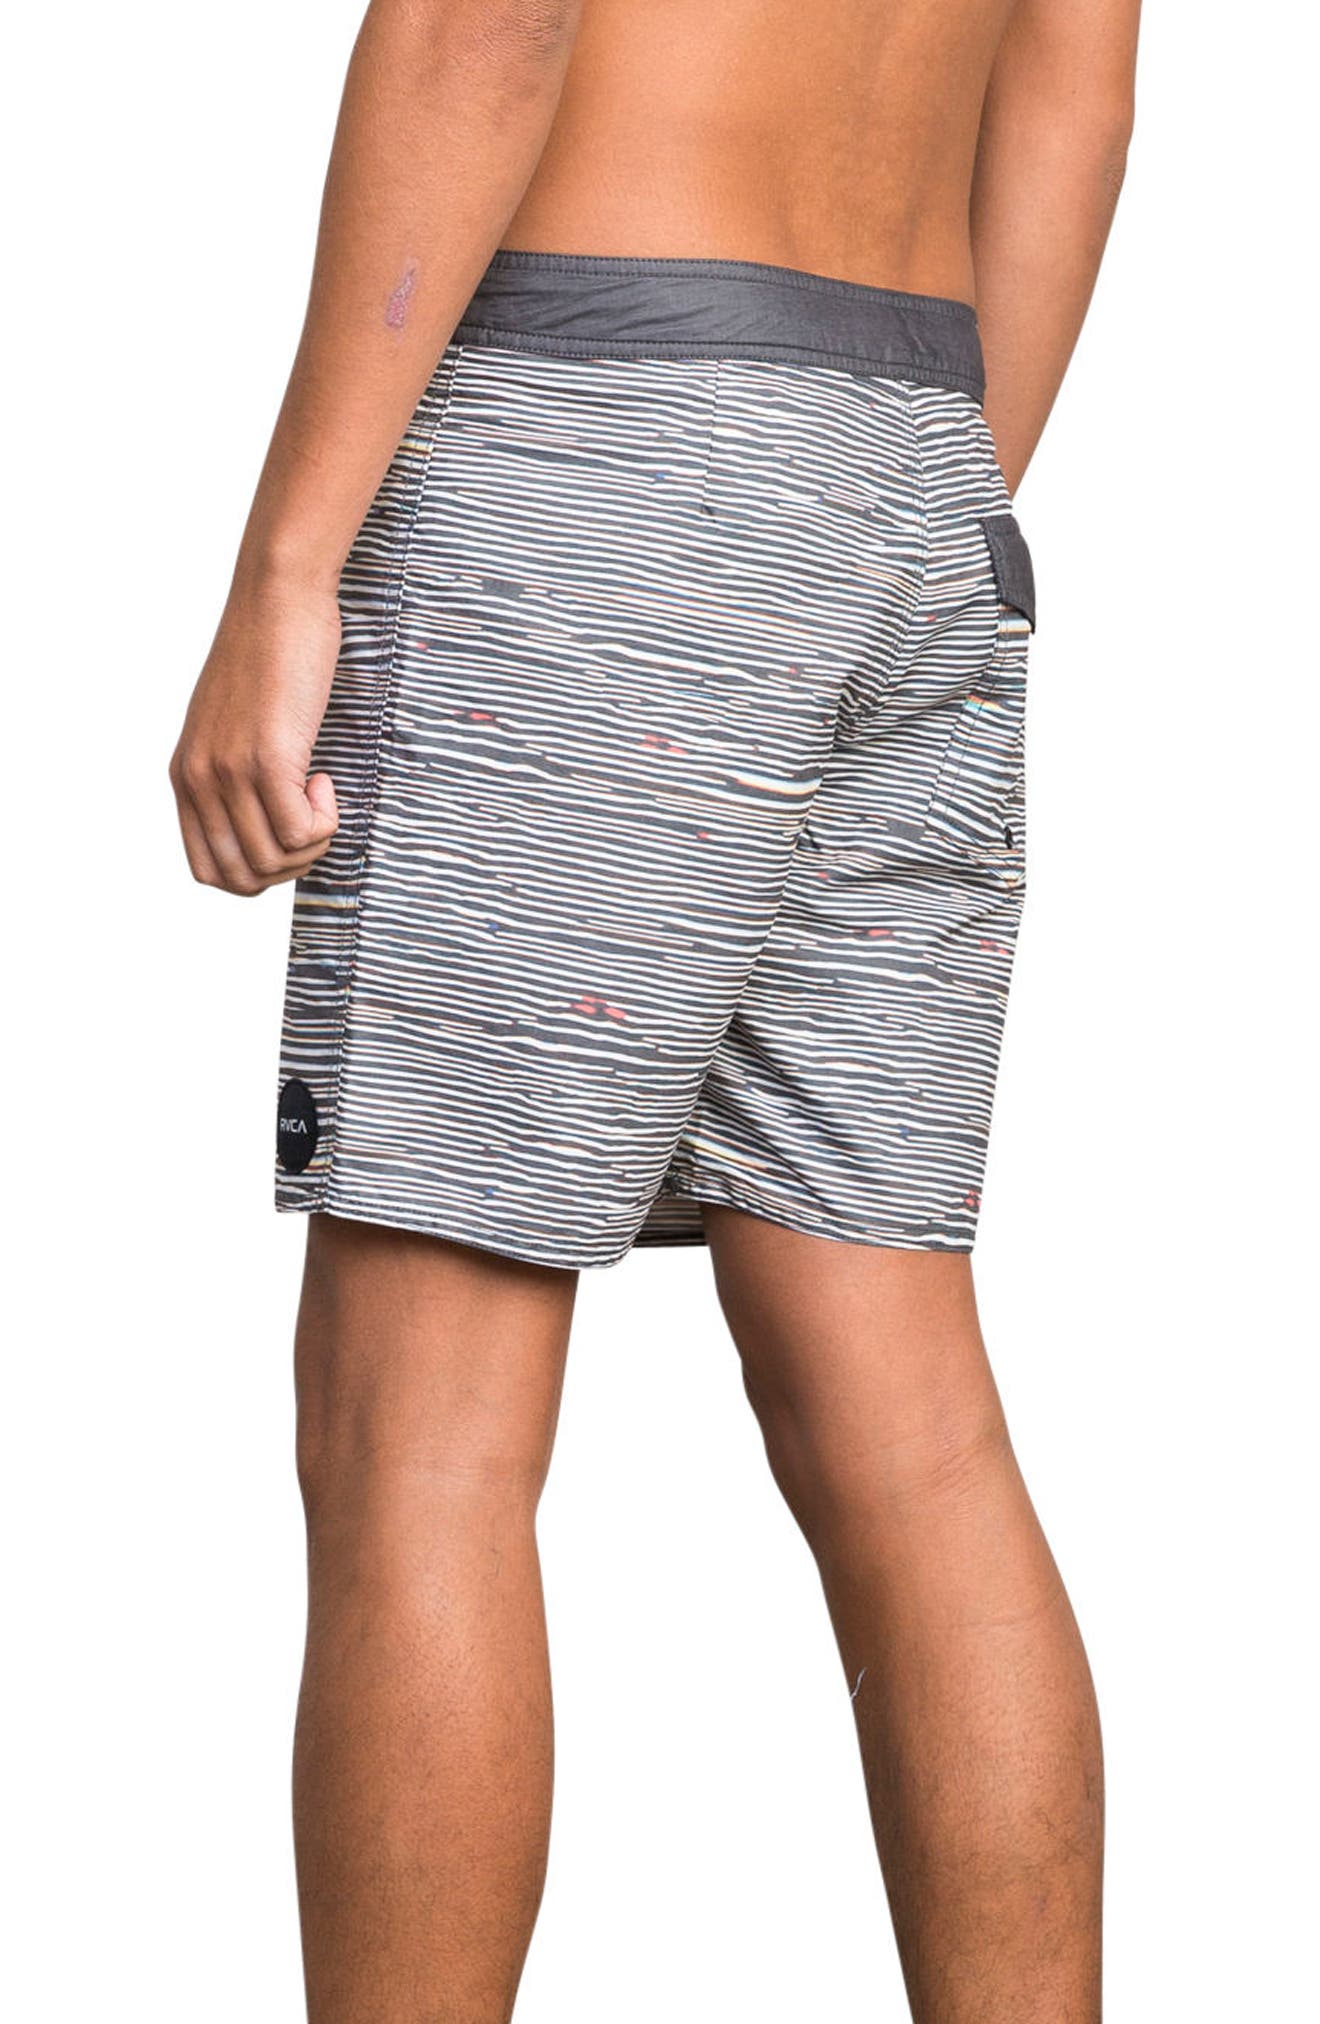 Flinch Board Shorts,                             Alternate thumbnail 3, color,                             020